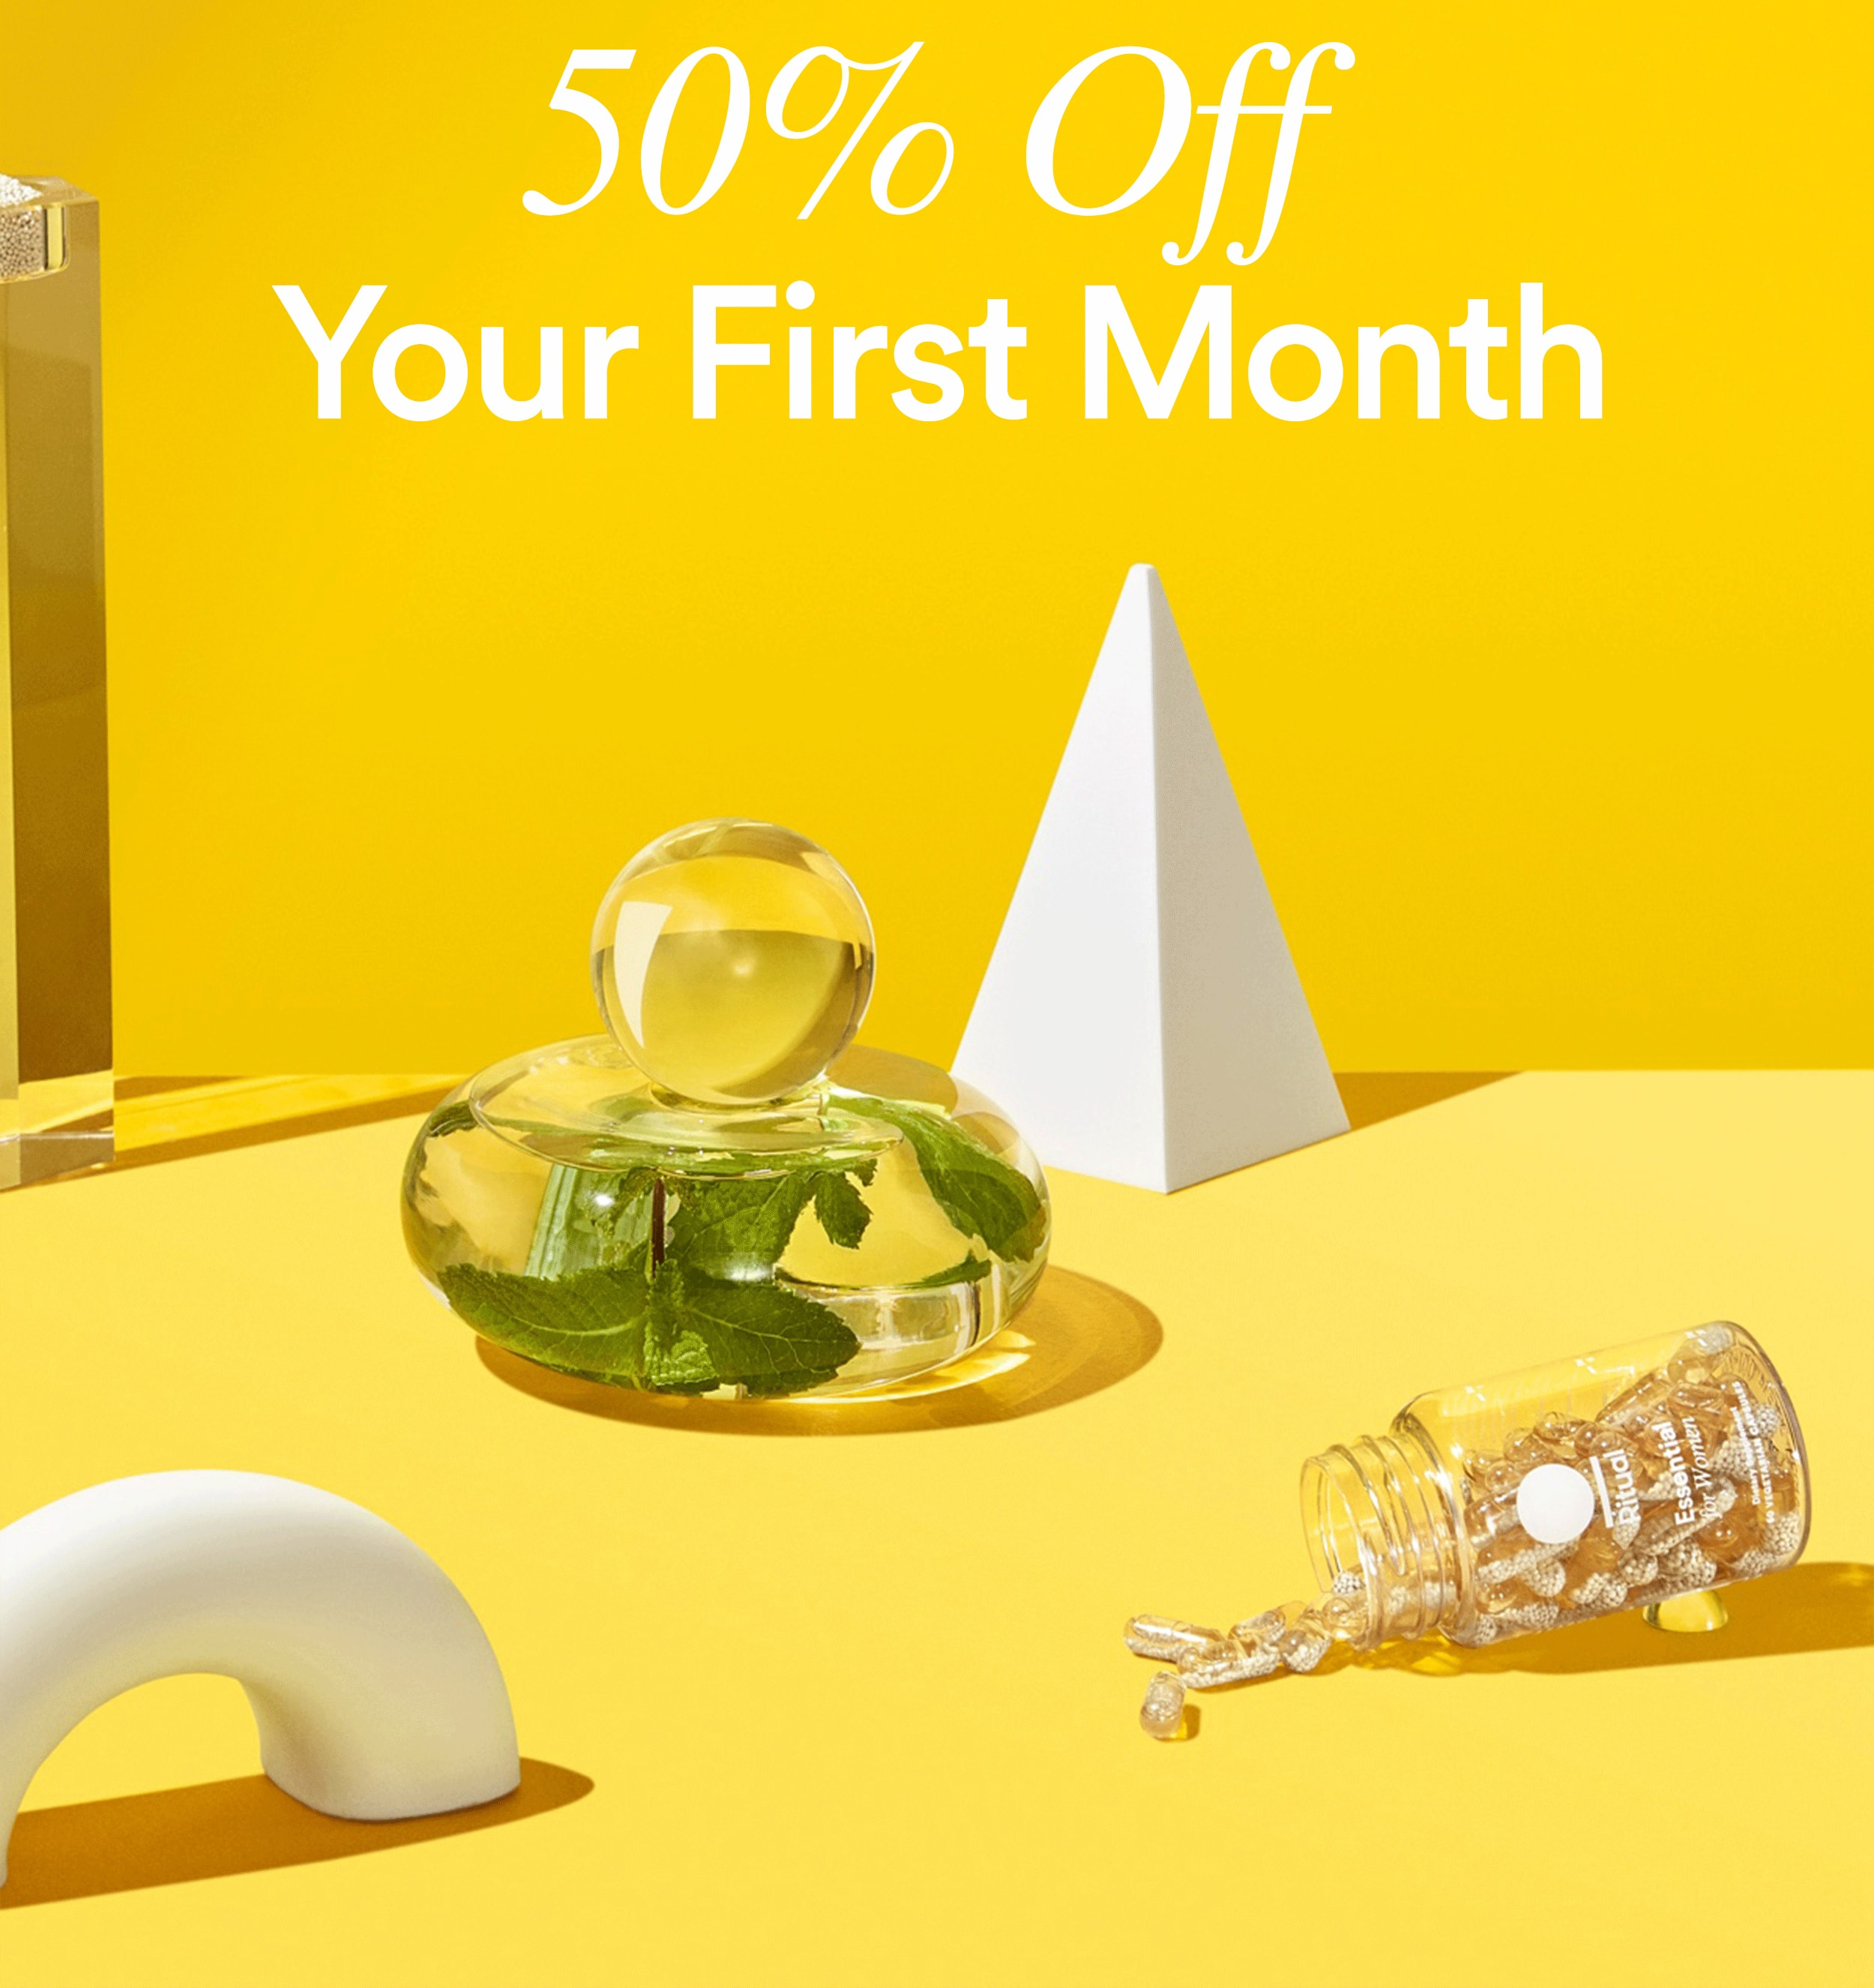 Ritual Vitamins Cyber Monday Coupon: 50% Off First Month!